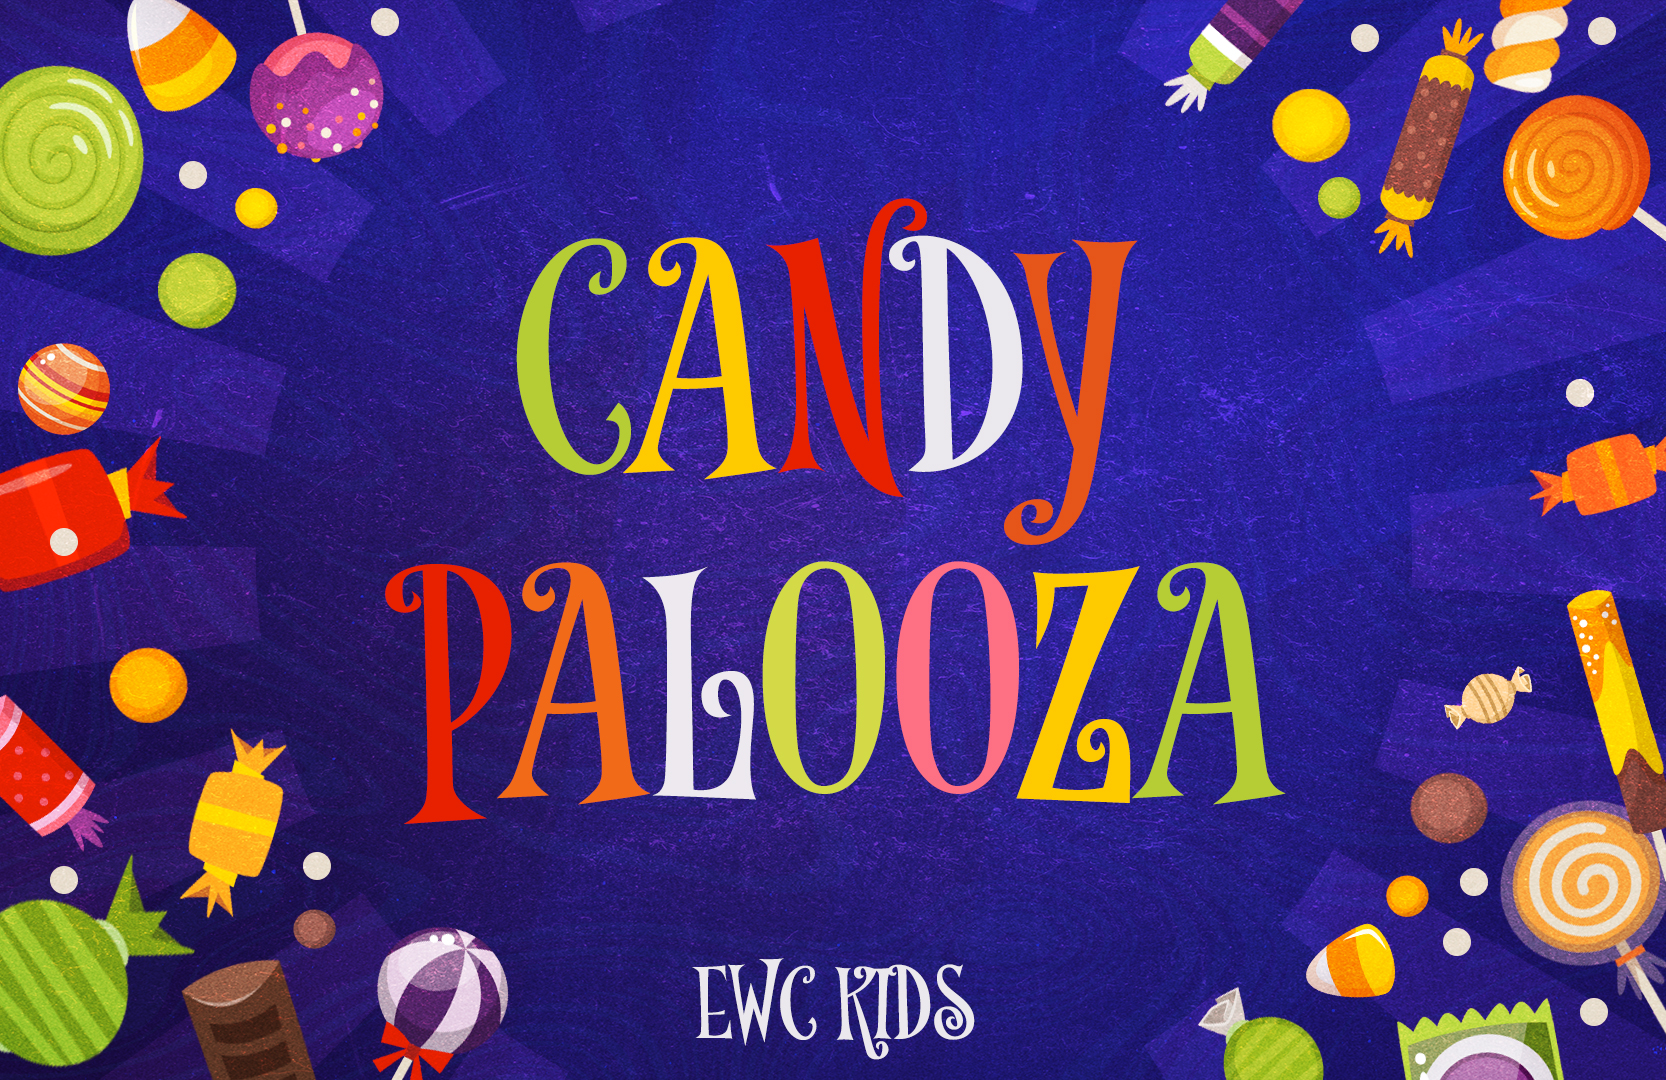 CandyPolooza_website